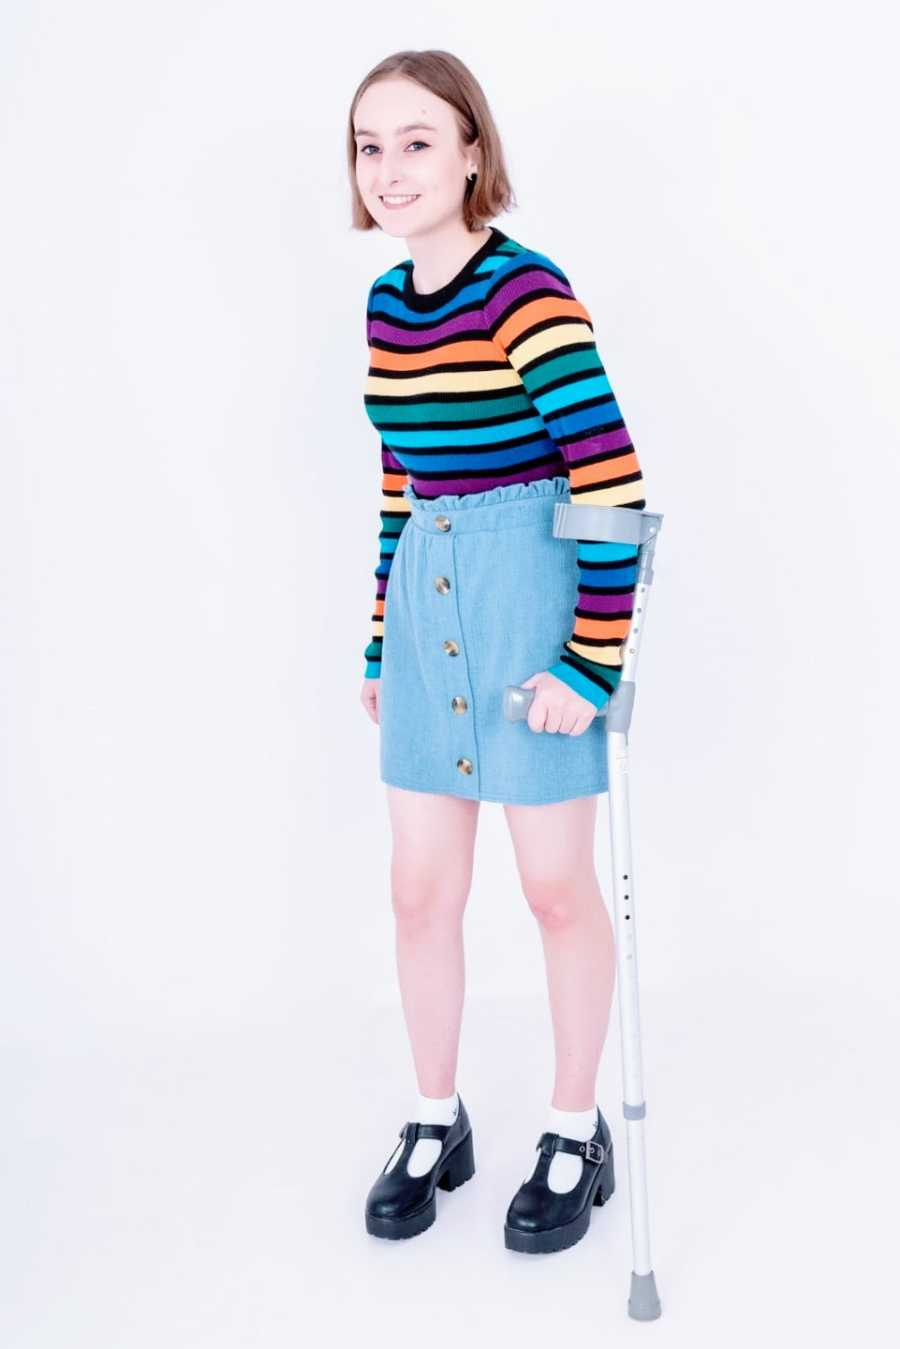 A young woman wearing a rainbow striped shirt stands with the help of a walking stick